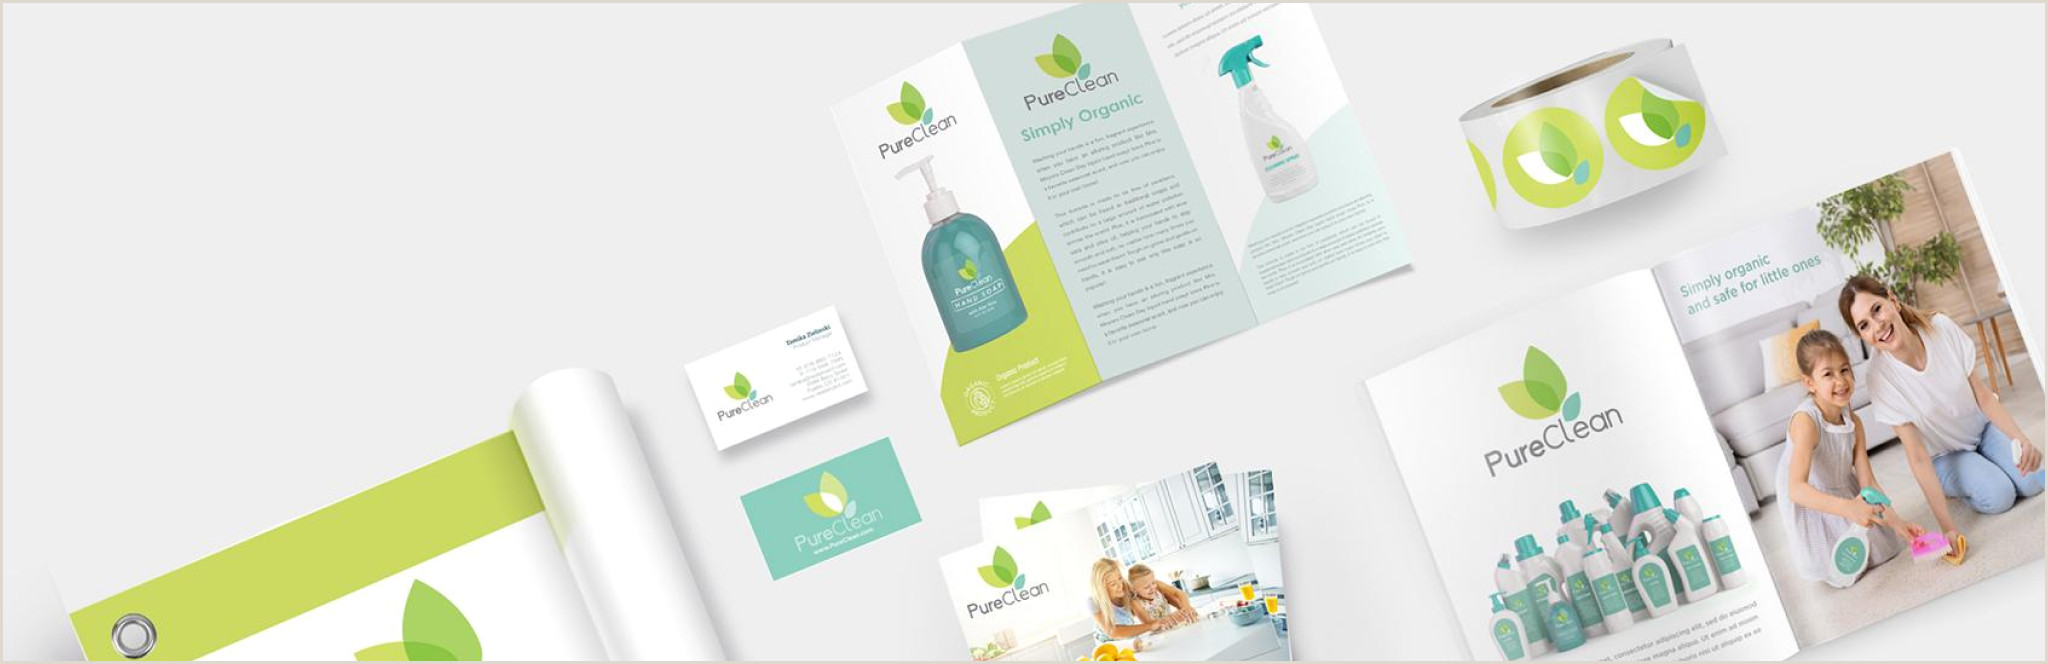 Most Professional Business Cards Printplace High Quality Line Printing Services